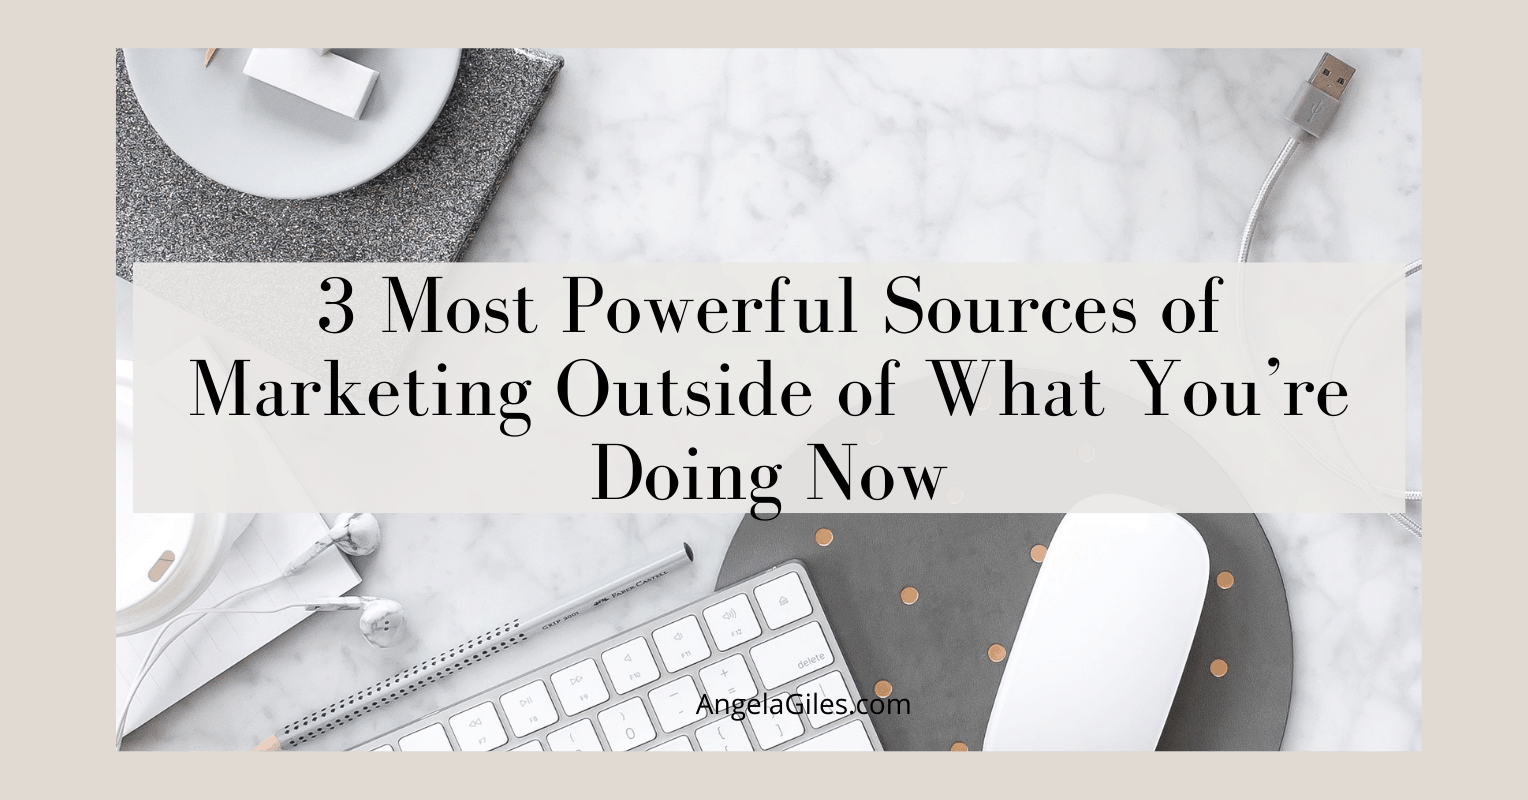 3 Most Powerful Sources of Marketing Outside of What You're Doing Now